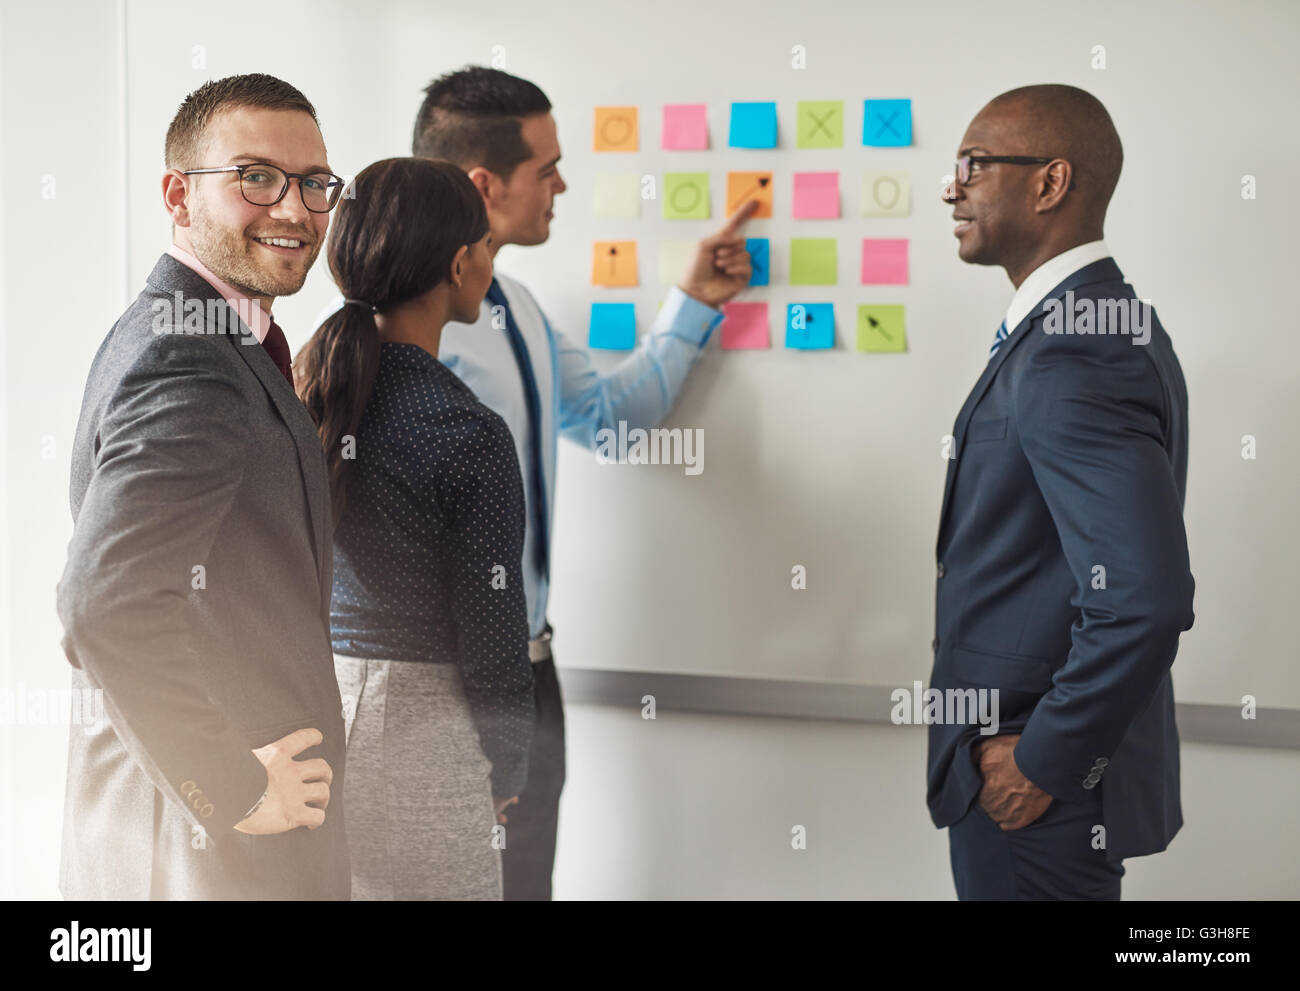 Group of businesspeople solving a puzzle on colorful memo notes on a wall with a young male executive at the rear - Stock Image